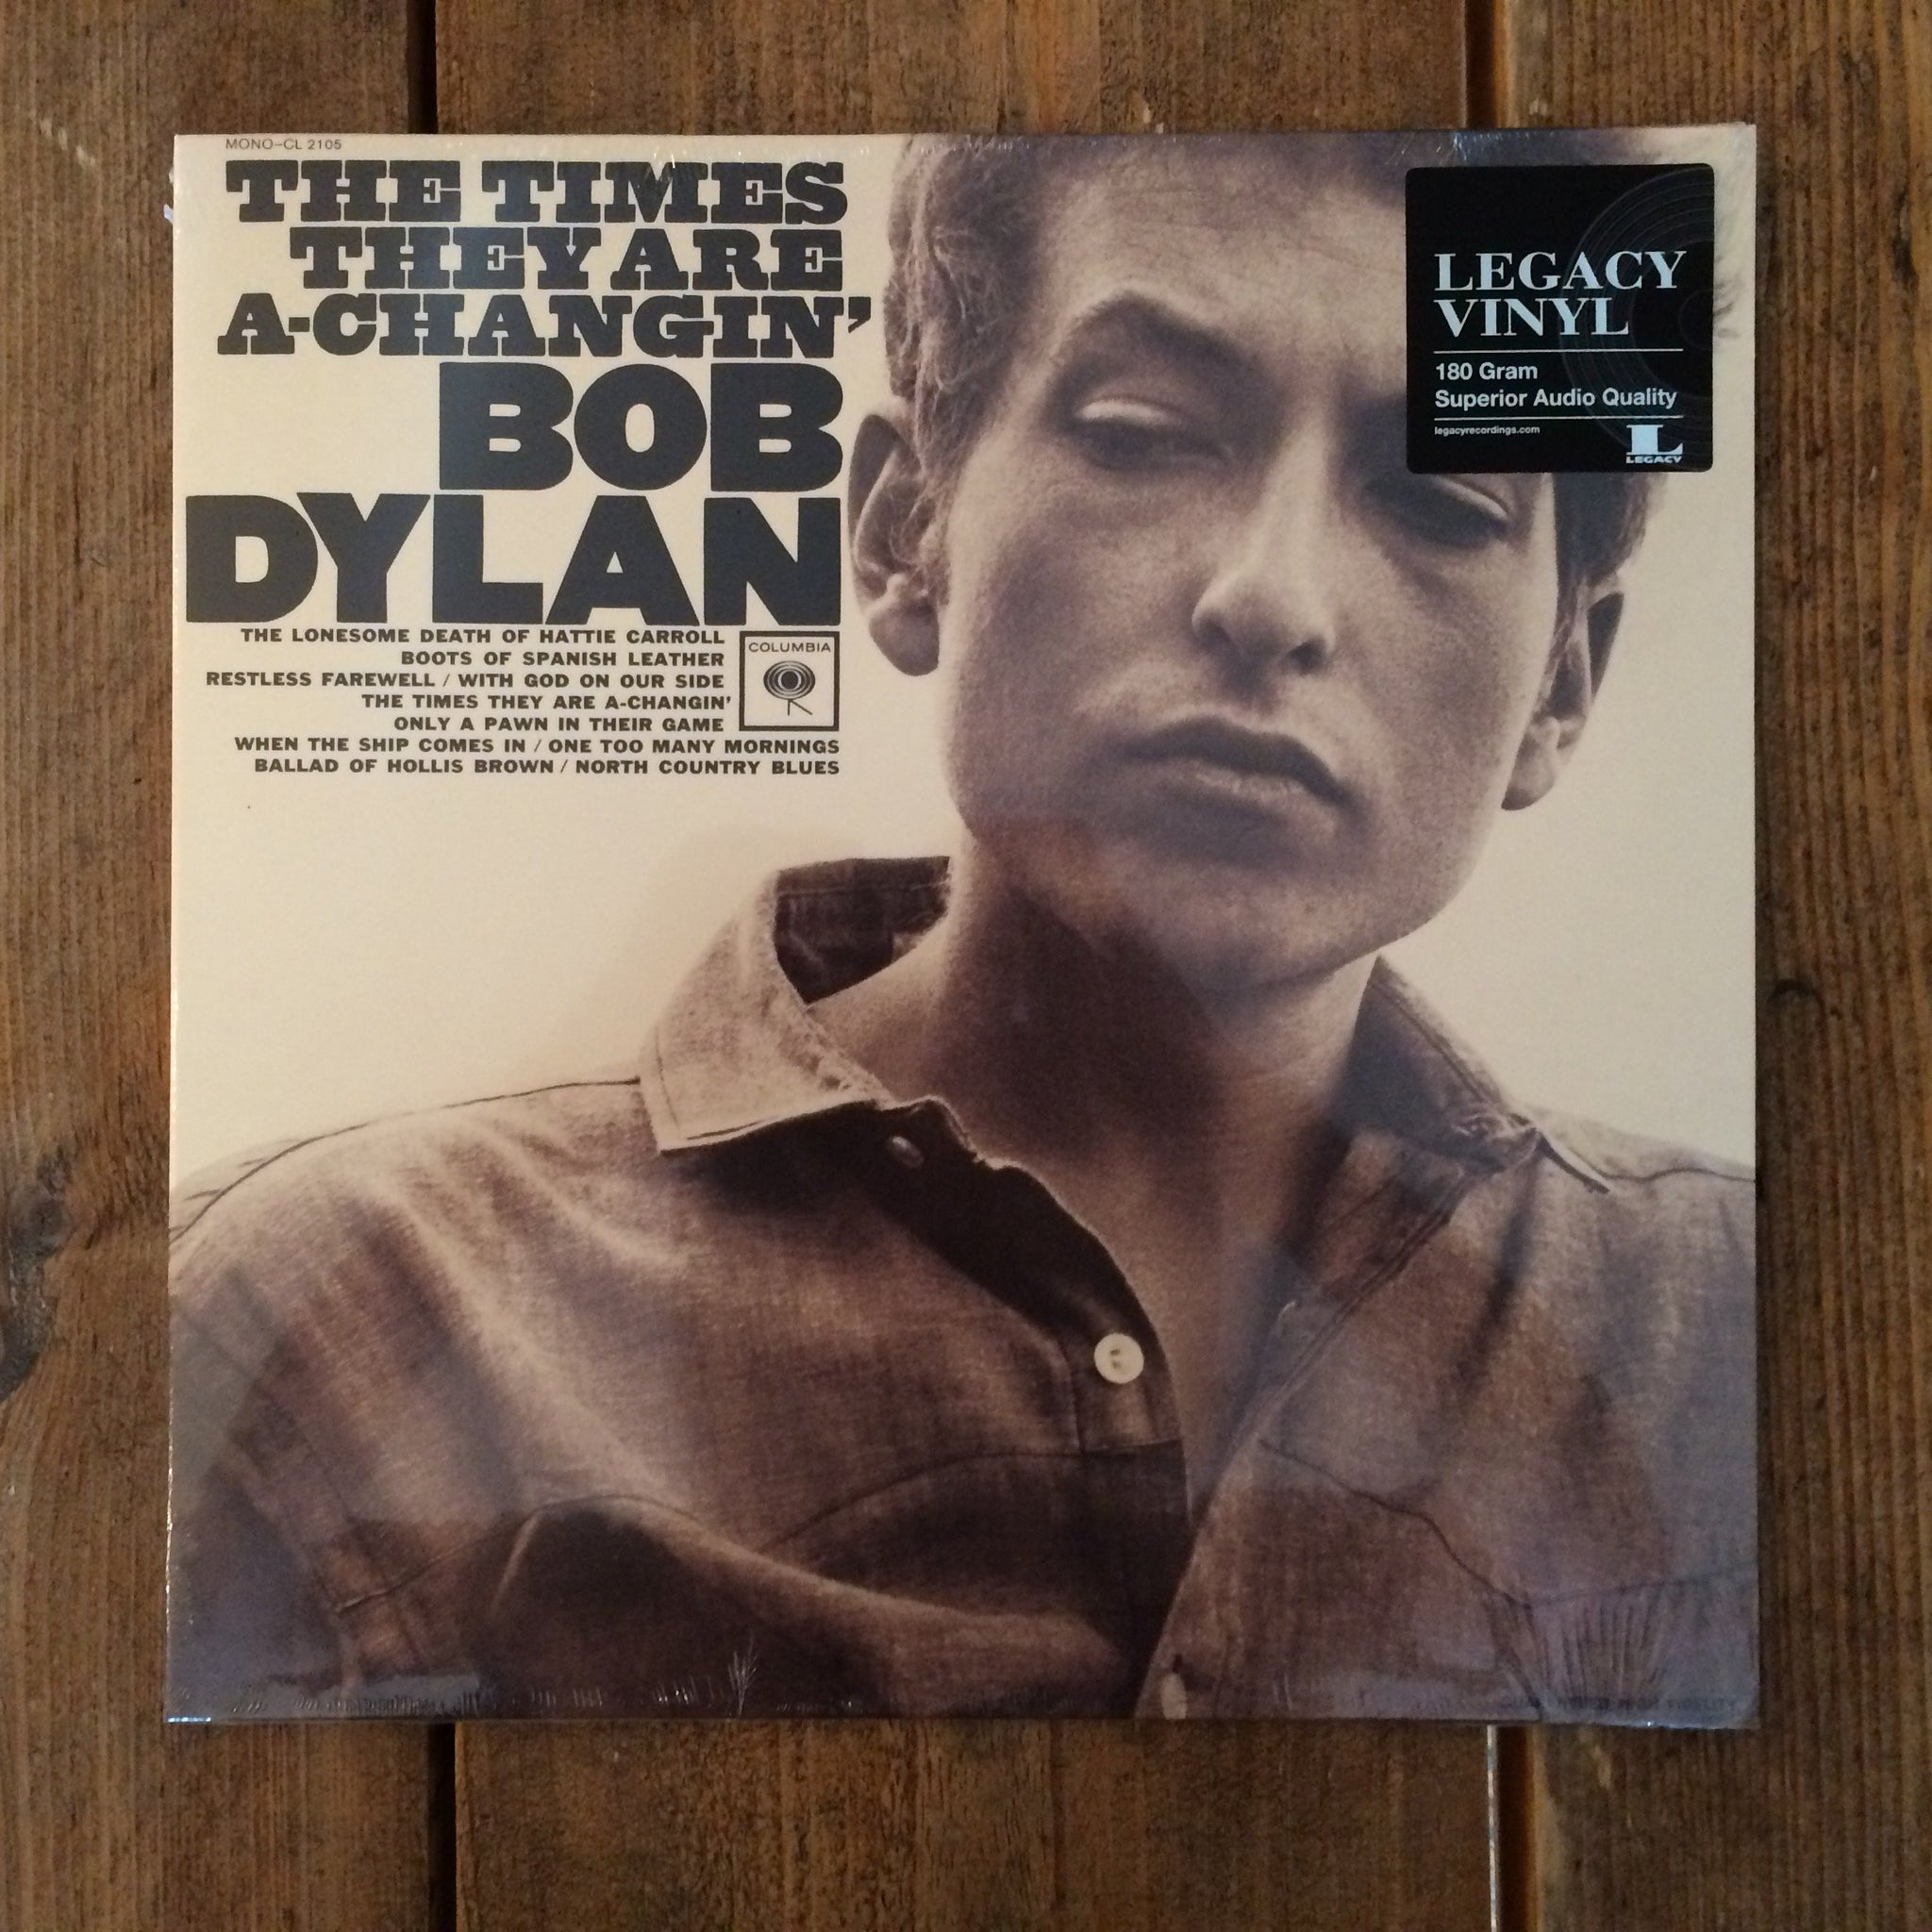 Bob Dylan - Times They Are A' Changin'